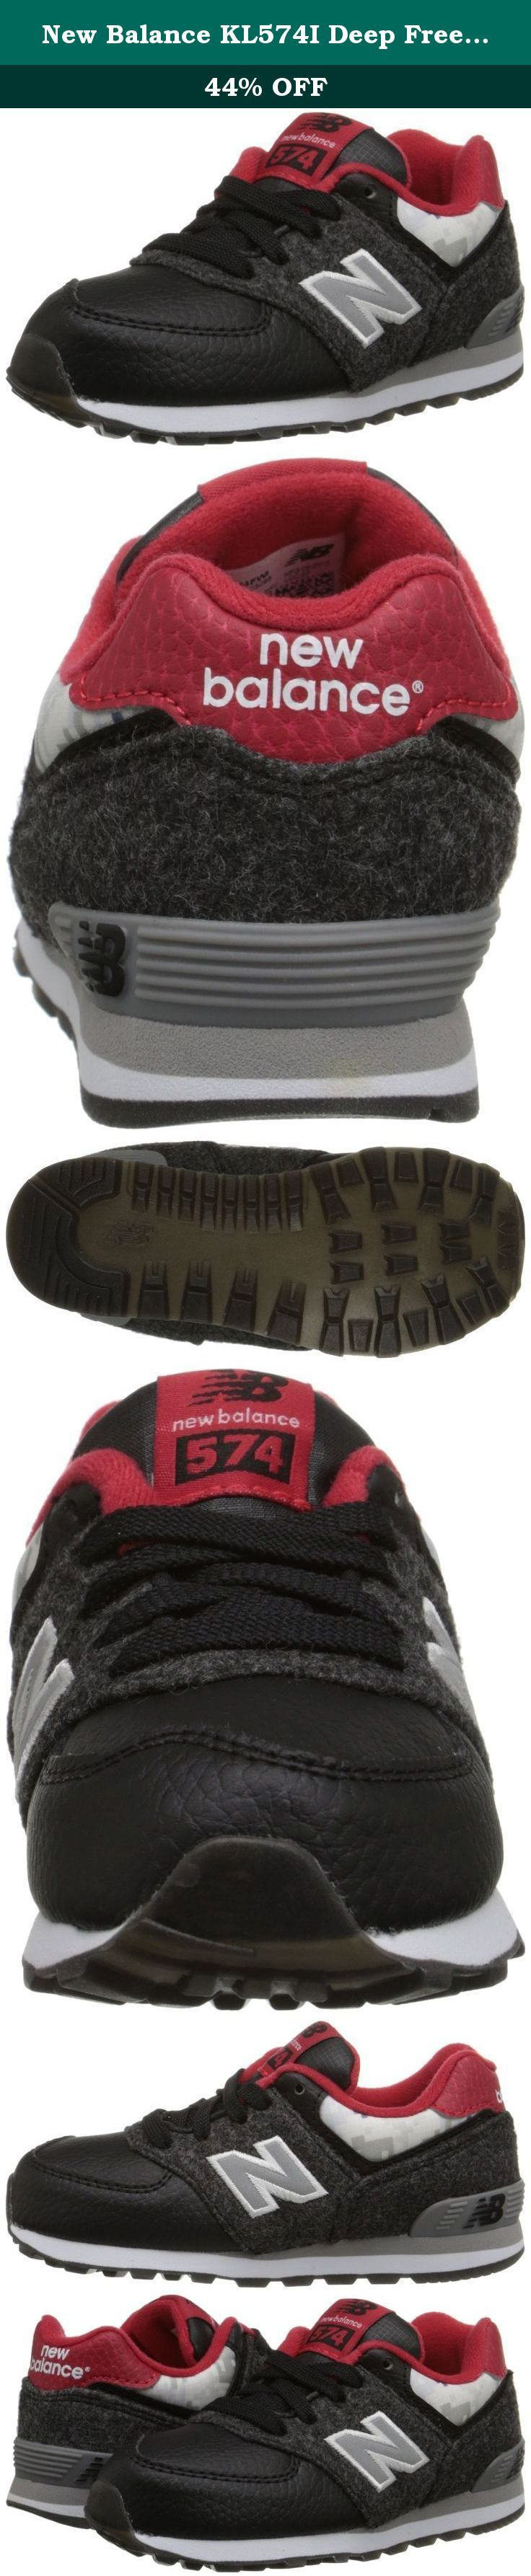 New Balance KL574I Deep Freeze Pack Classic Running Shoe (Infant/Toddler), Black/Red, 3 W US Infant. Ethylene vinyl acetate midsole and heel.